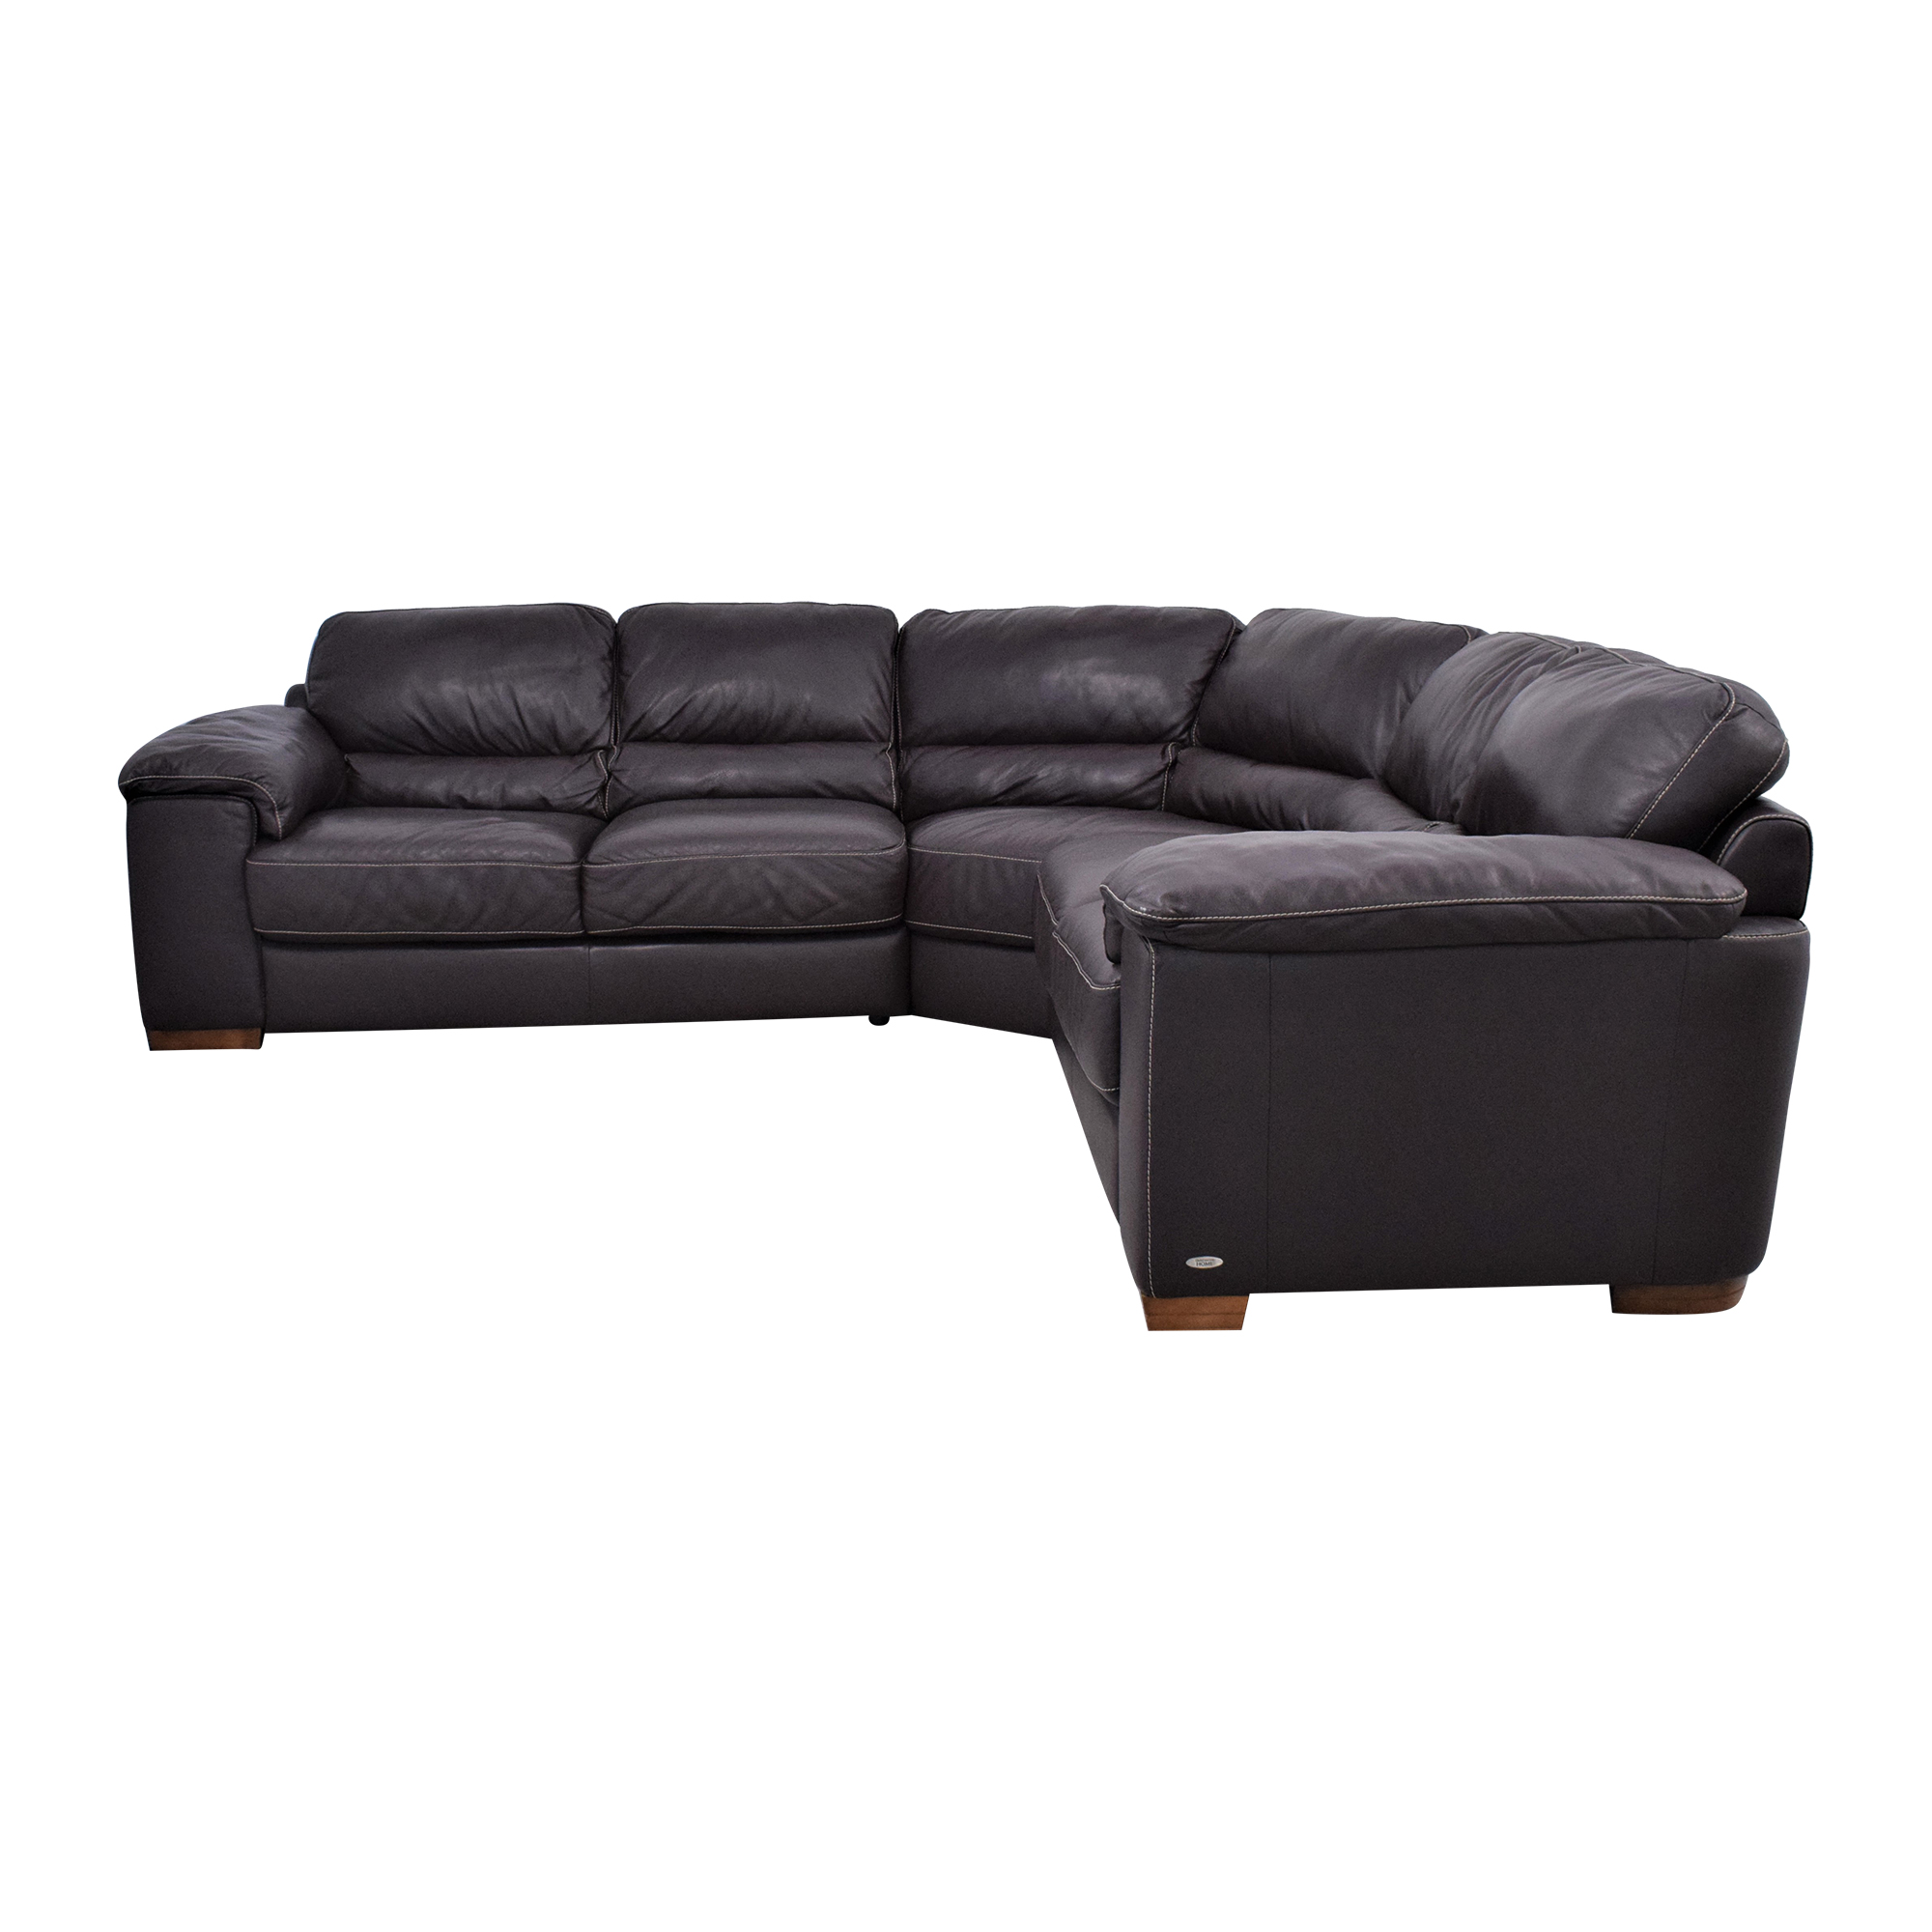 Cindy Crawford Home Cindy Crawford Home Maglie Leather Sectional Sofa coupon